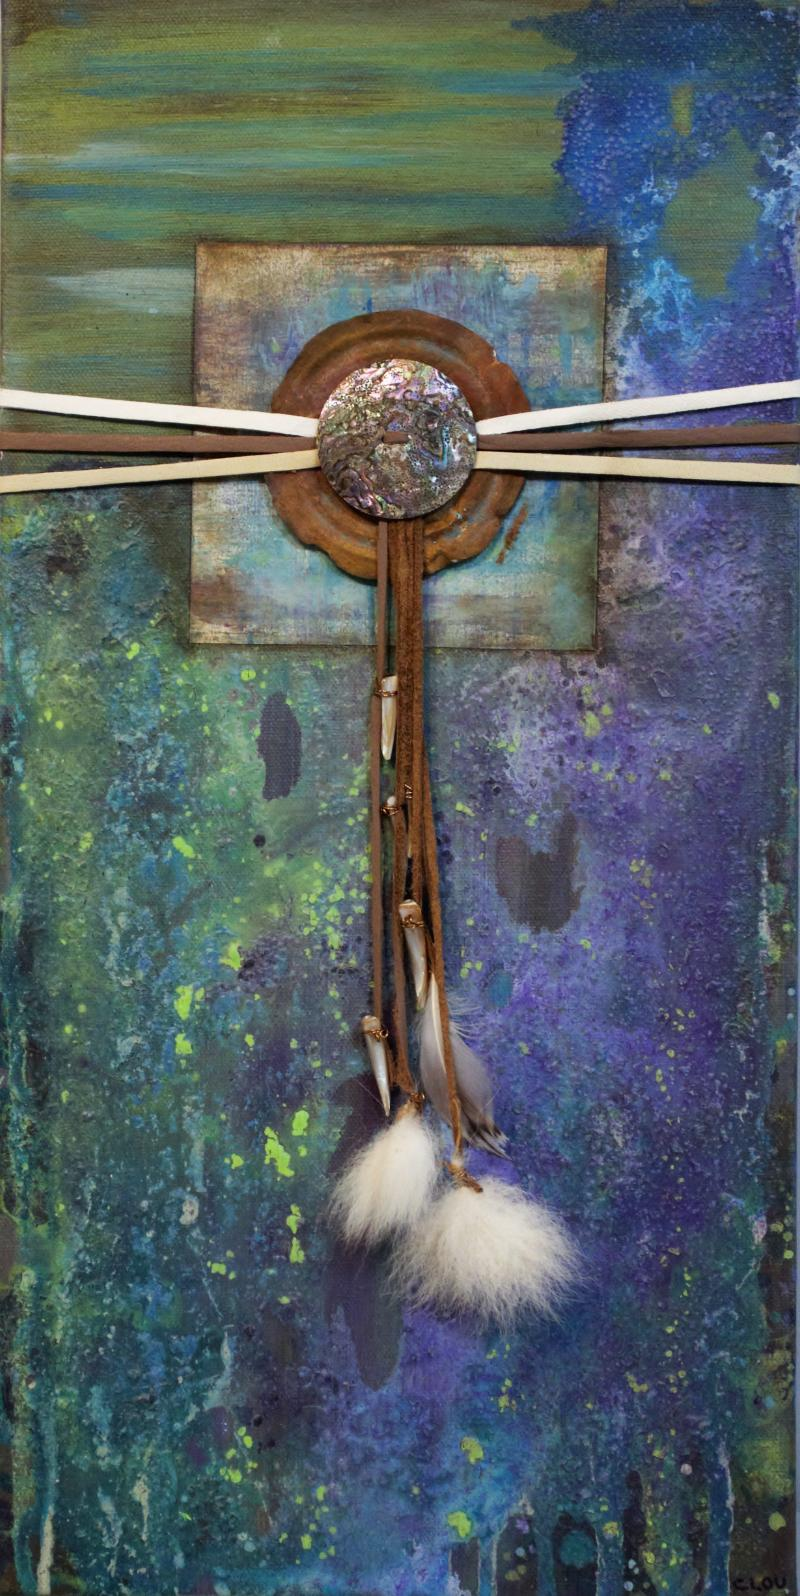 Solace, mixed media on canbas, natural & altered materials by Cindy Fuerstenberg of Pine City, MN